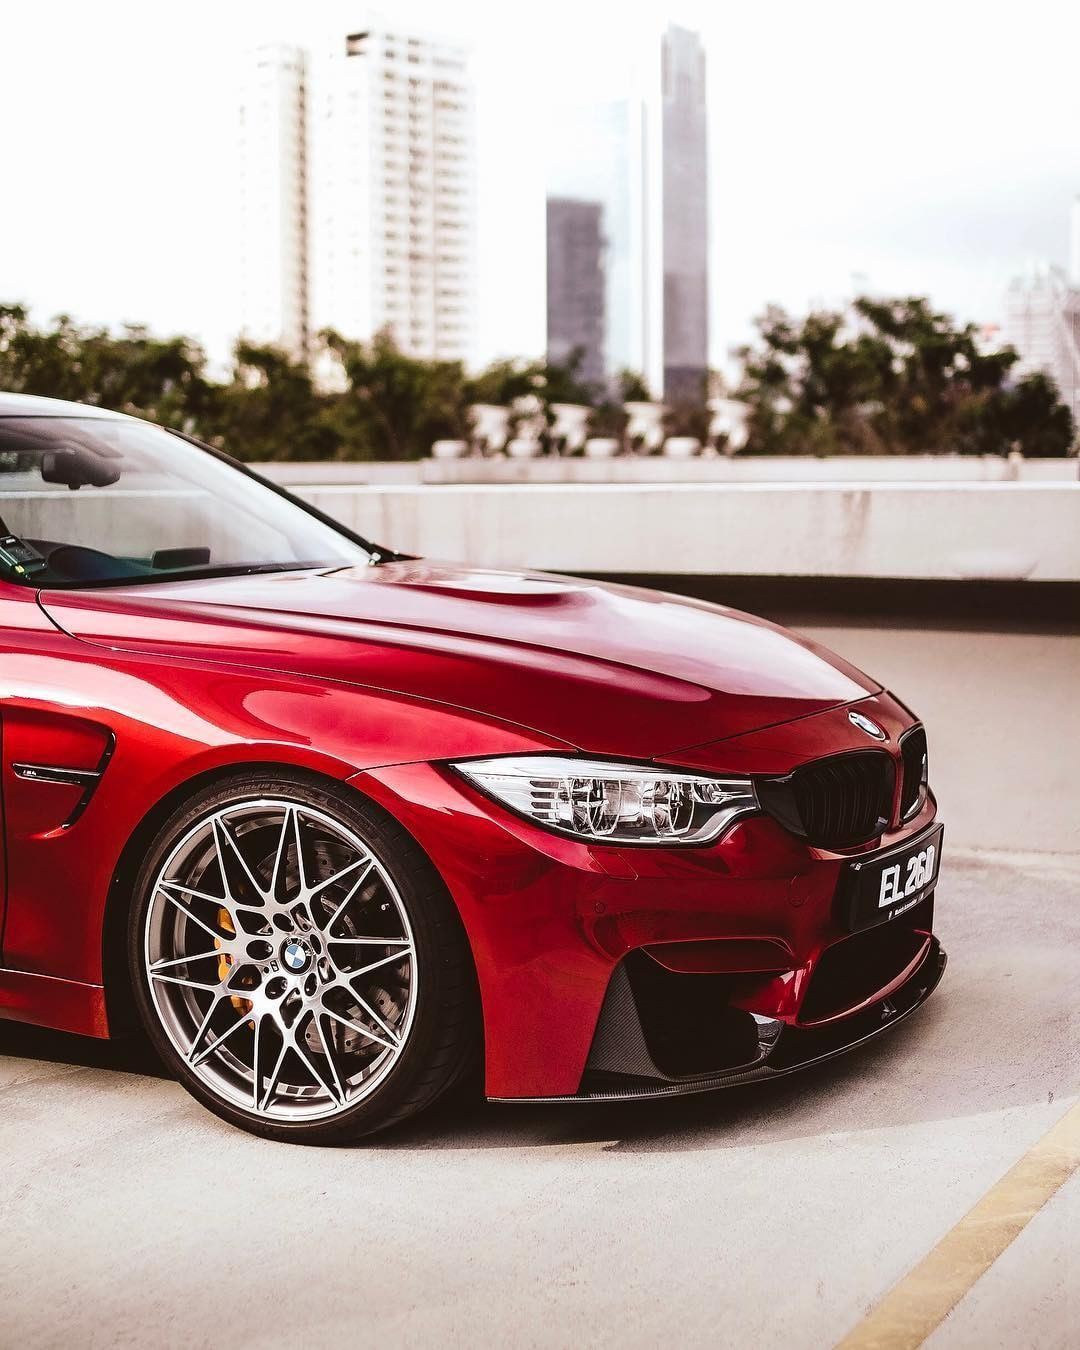 Bmw F82 M4 In Bmw Individual Siena Red Ii Metallic Bmw M4 Coupe